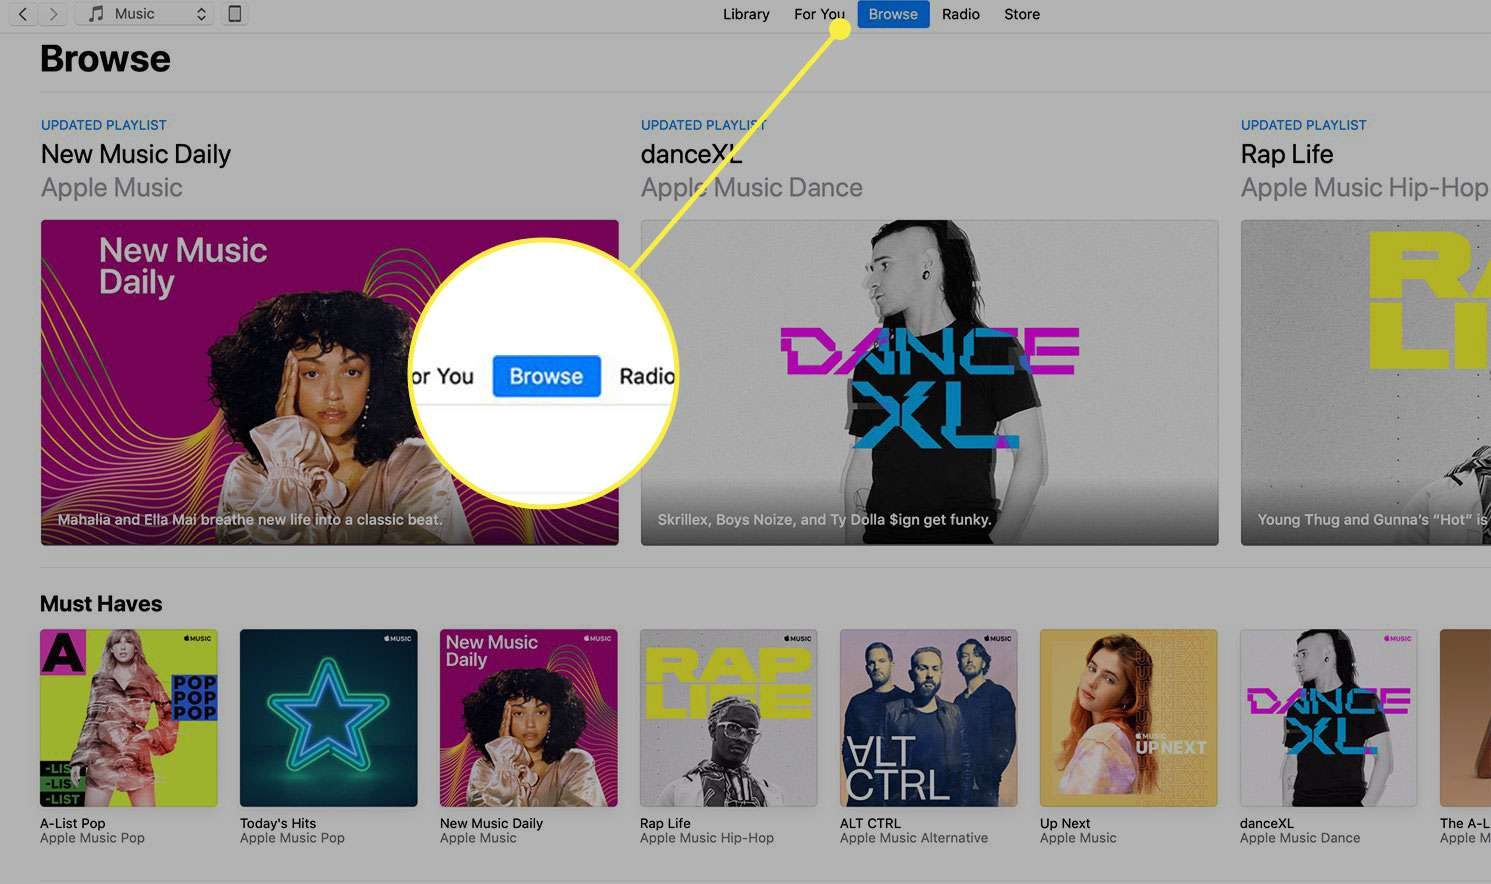 A screenshot of iTunes with the Browse heading highlighted